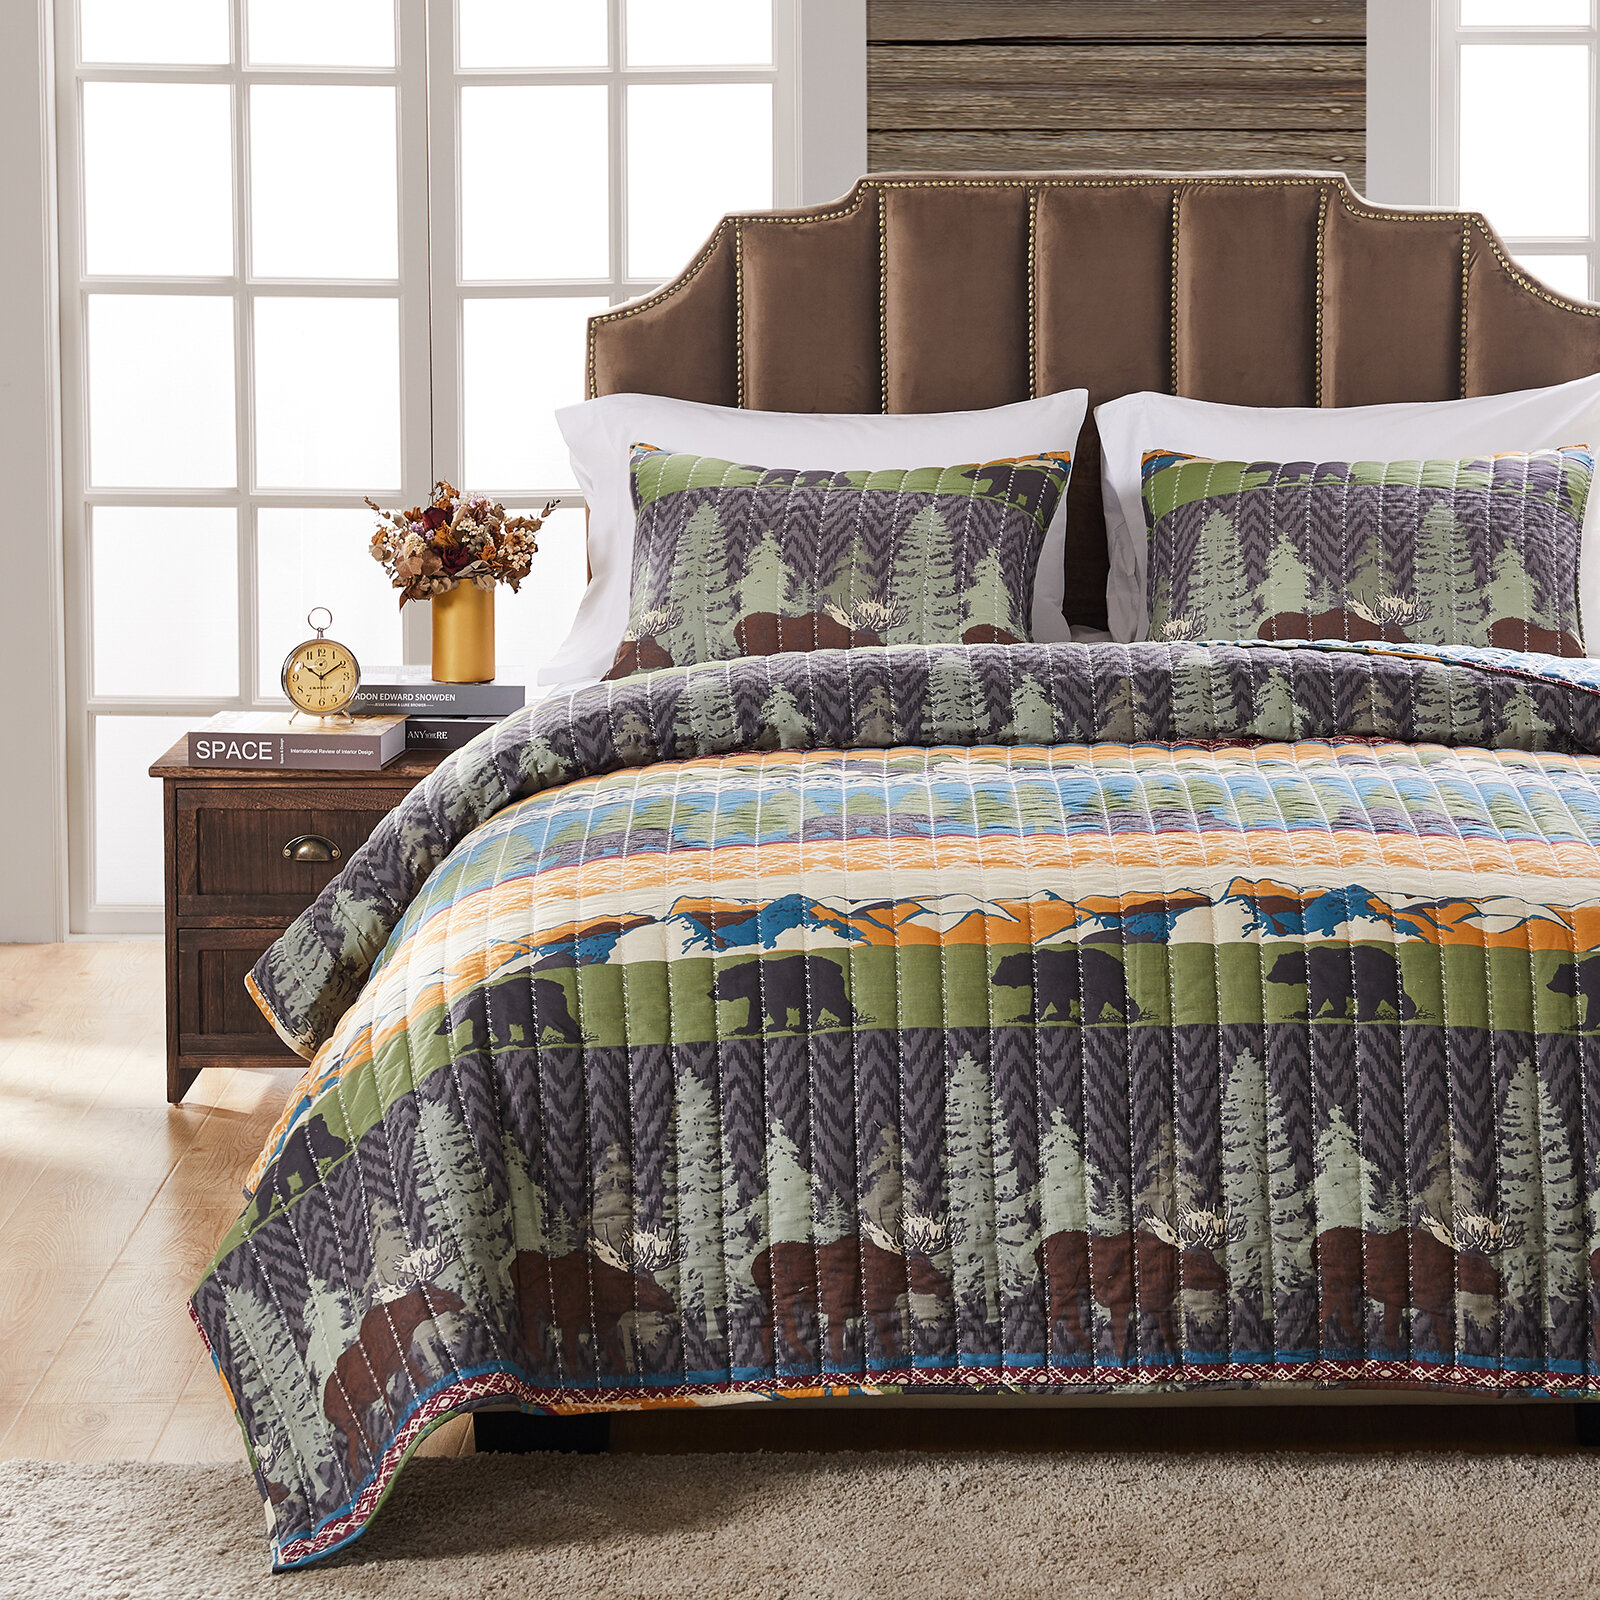 Cabin Lodge Geometric Quilts Coverlets Sets You Ll Love In 2021 Wayfair